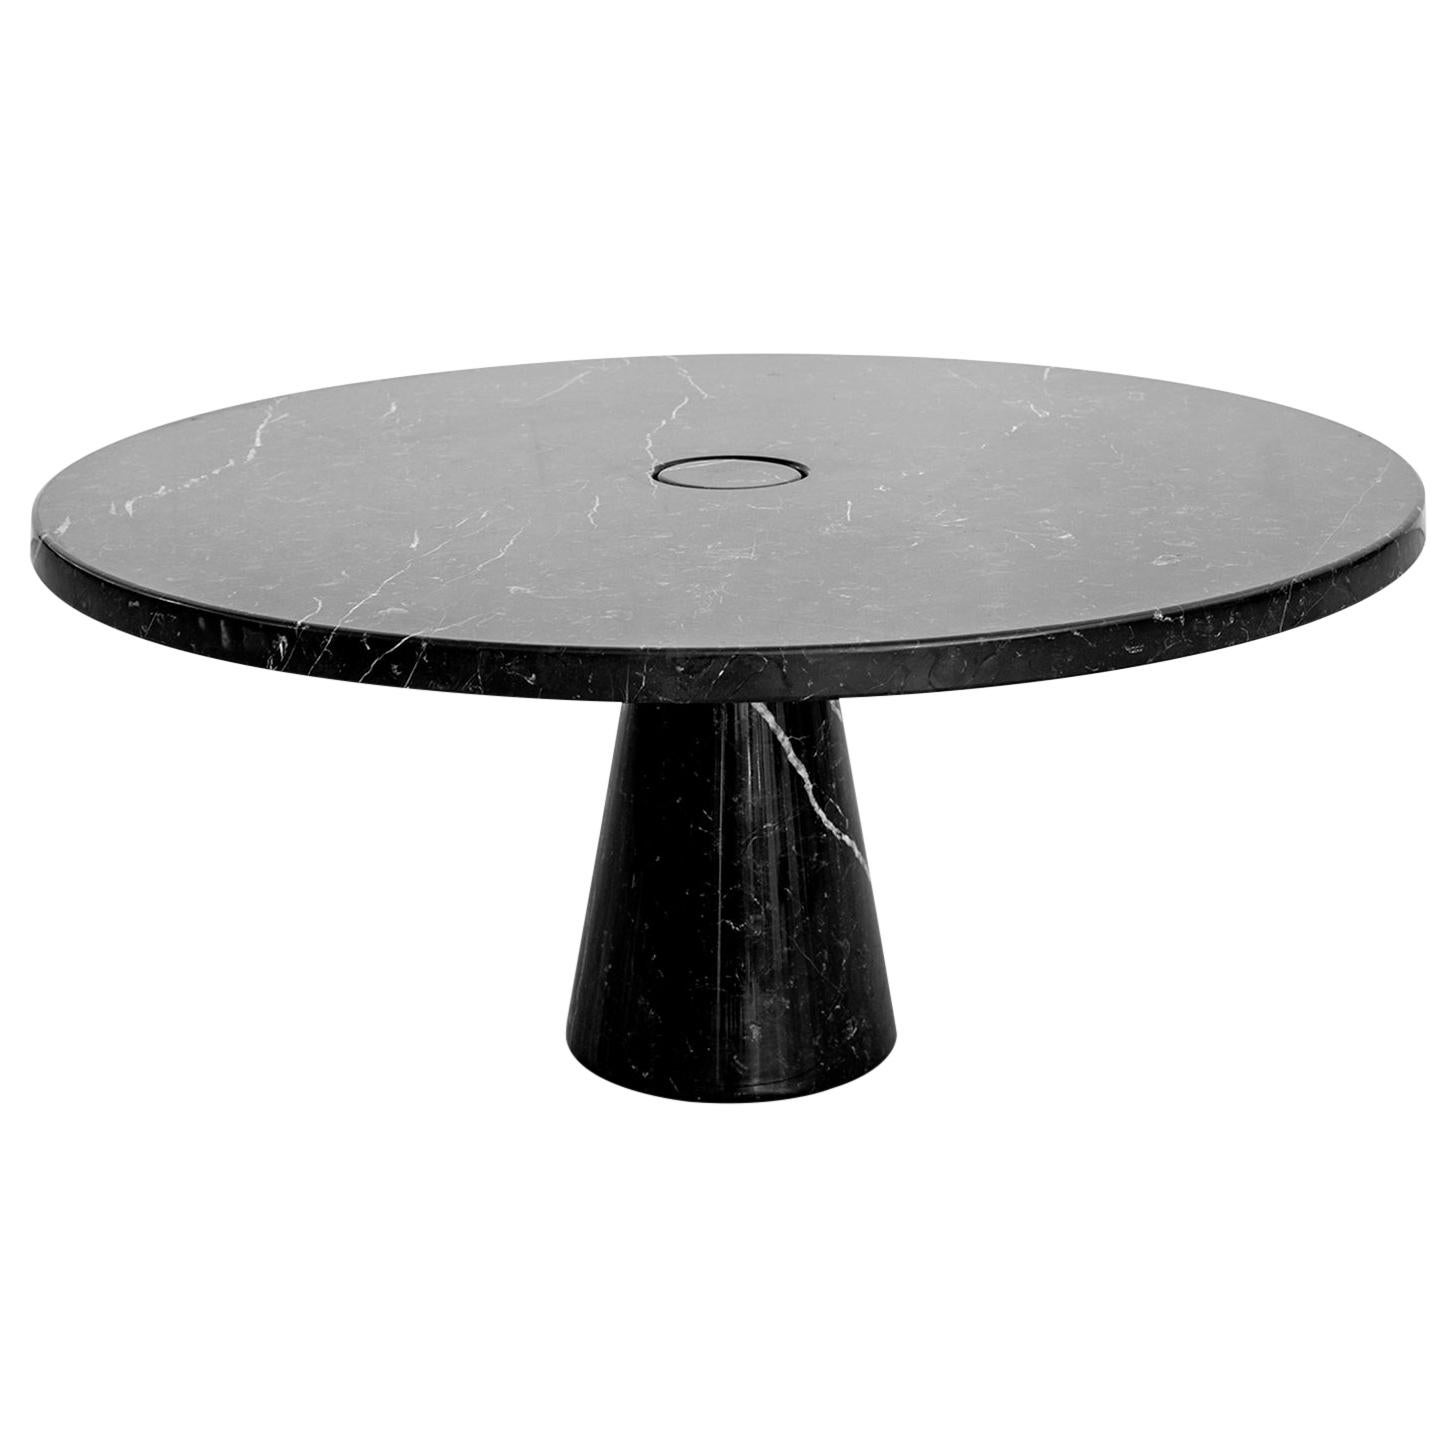 Angelo Mangiarotti Round Marble Eros Coffee Table